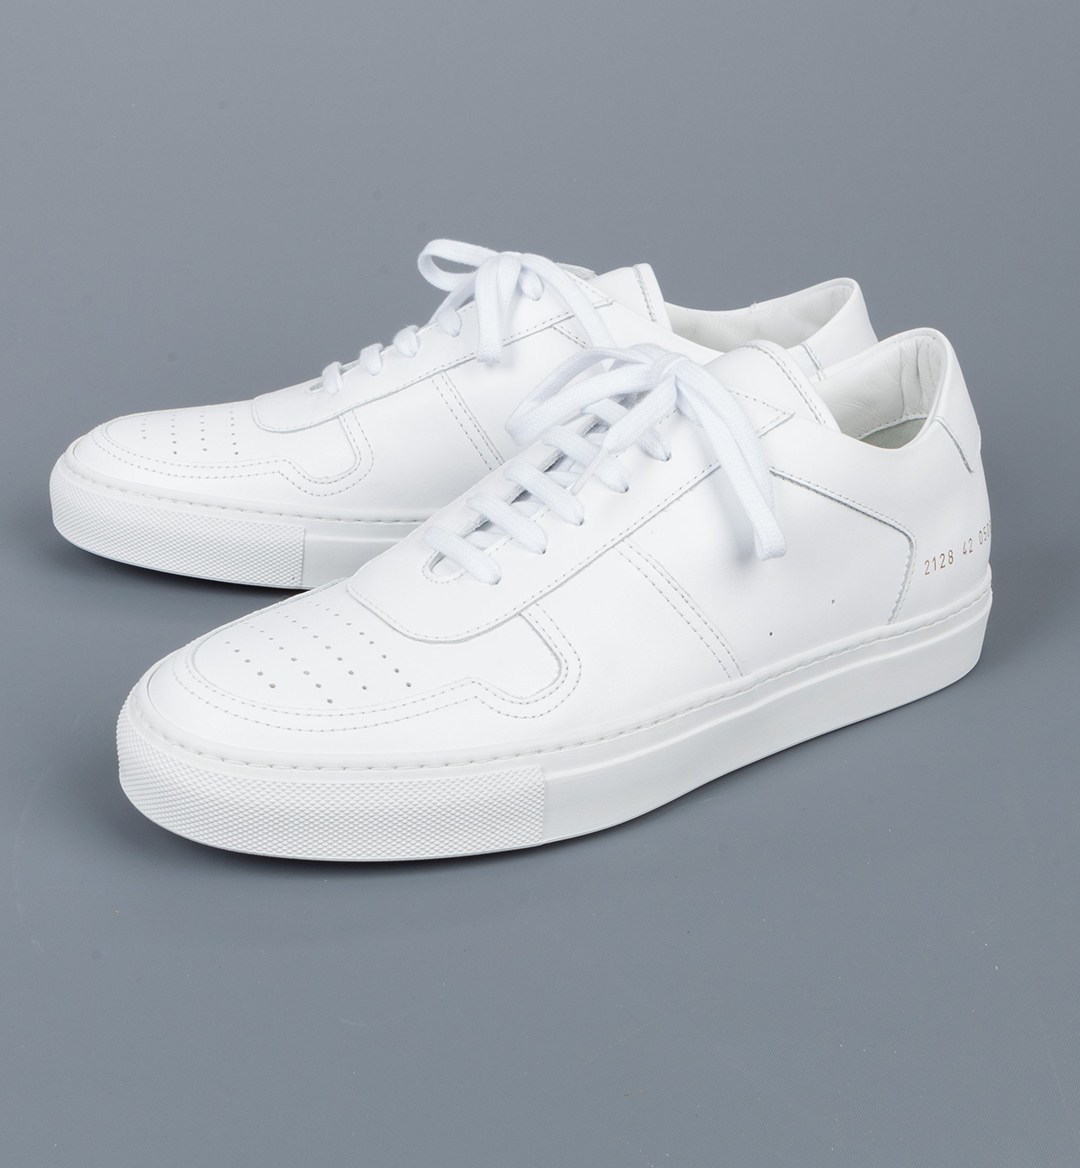 luxury court sneakers common projects mobile